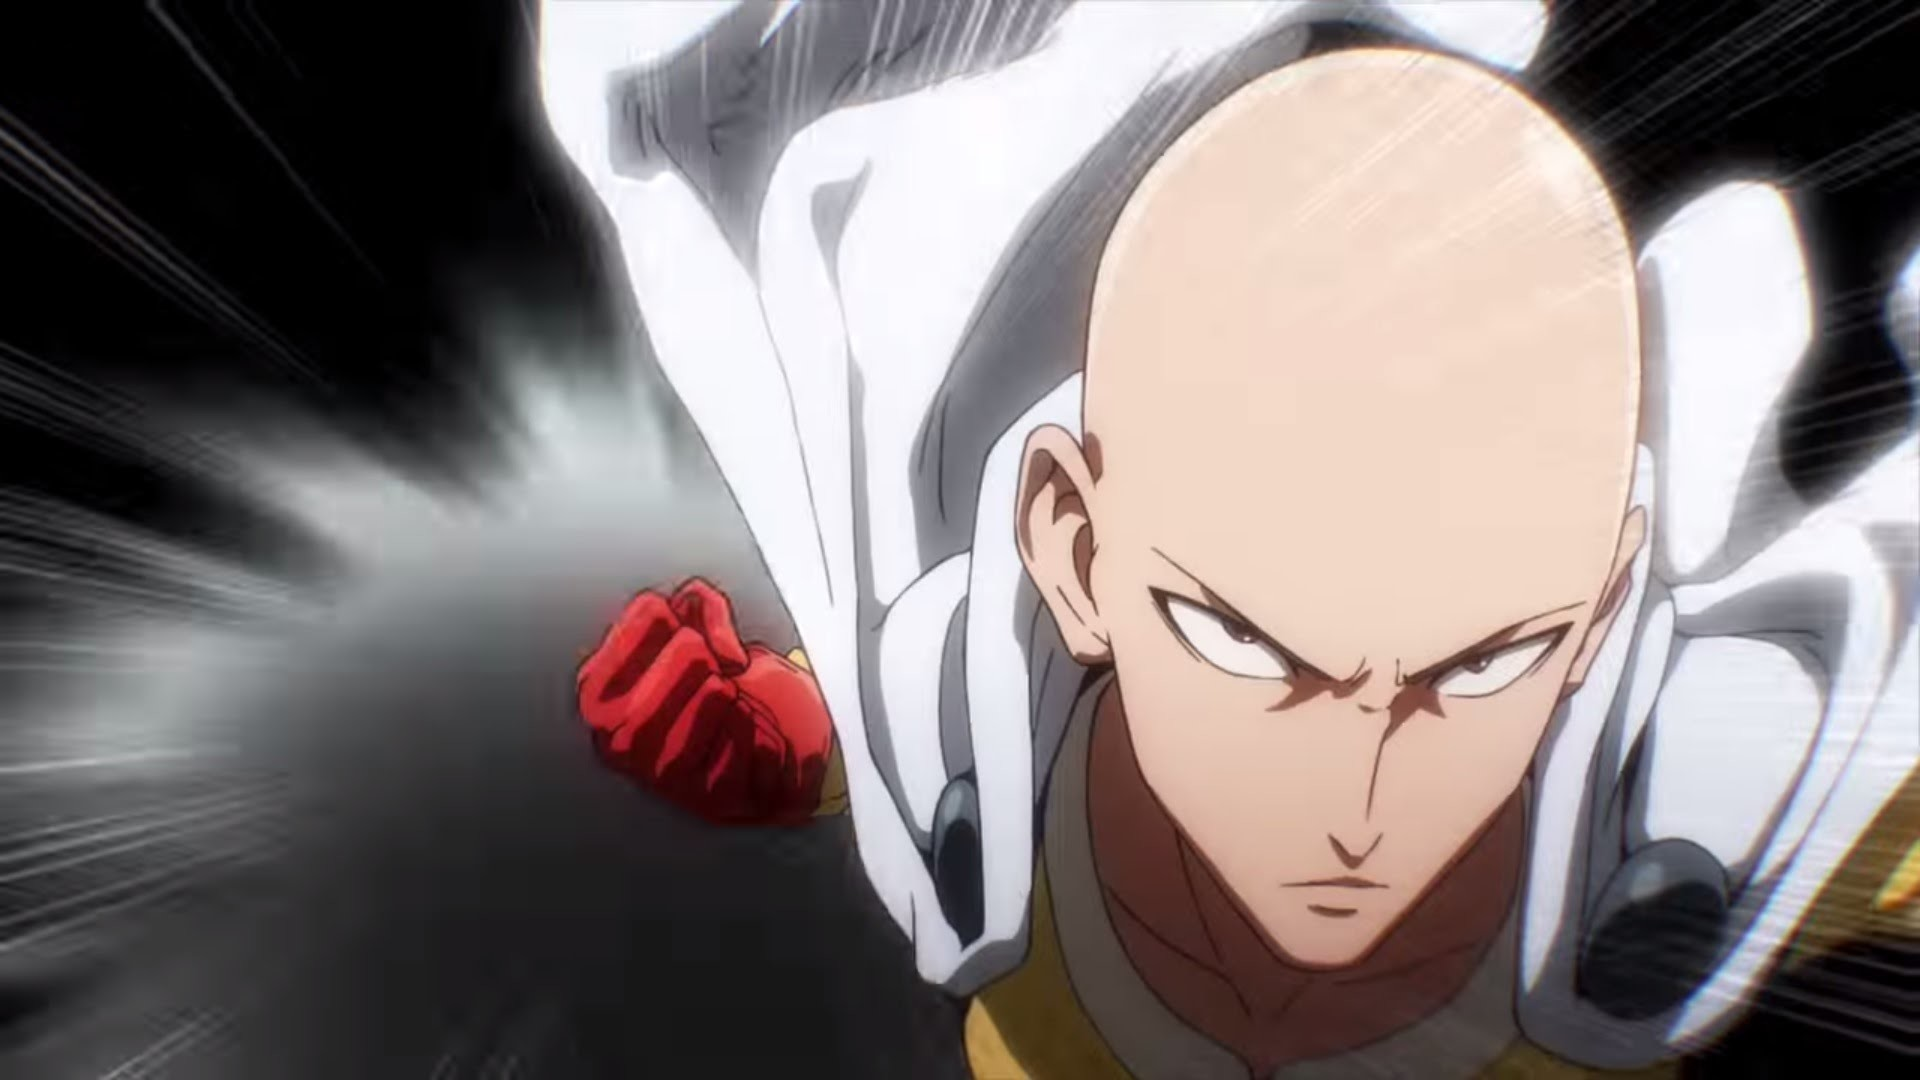 very small HD one punch man wallpaper dump. by orktauOct 1. Load 8 more  images Grid view